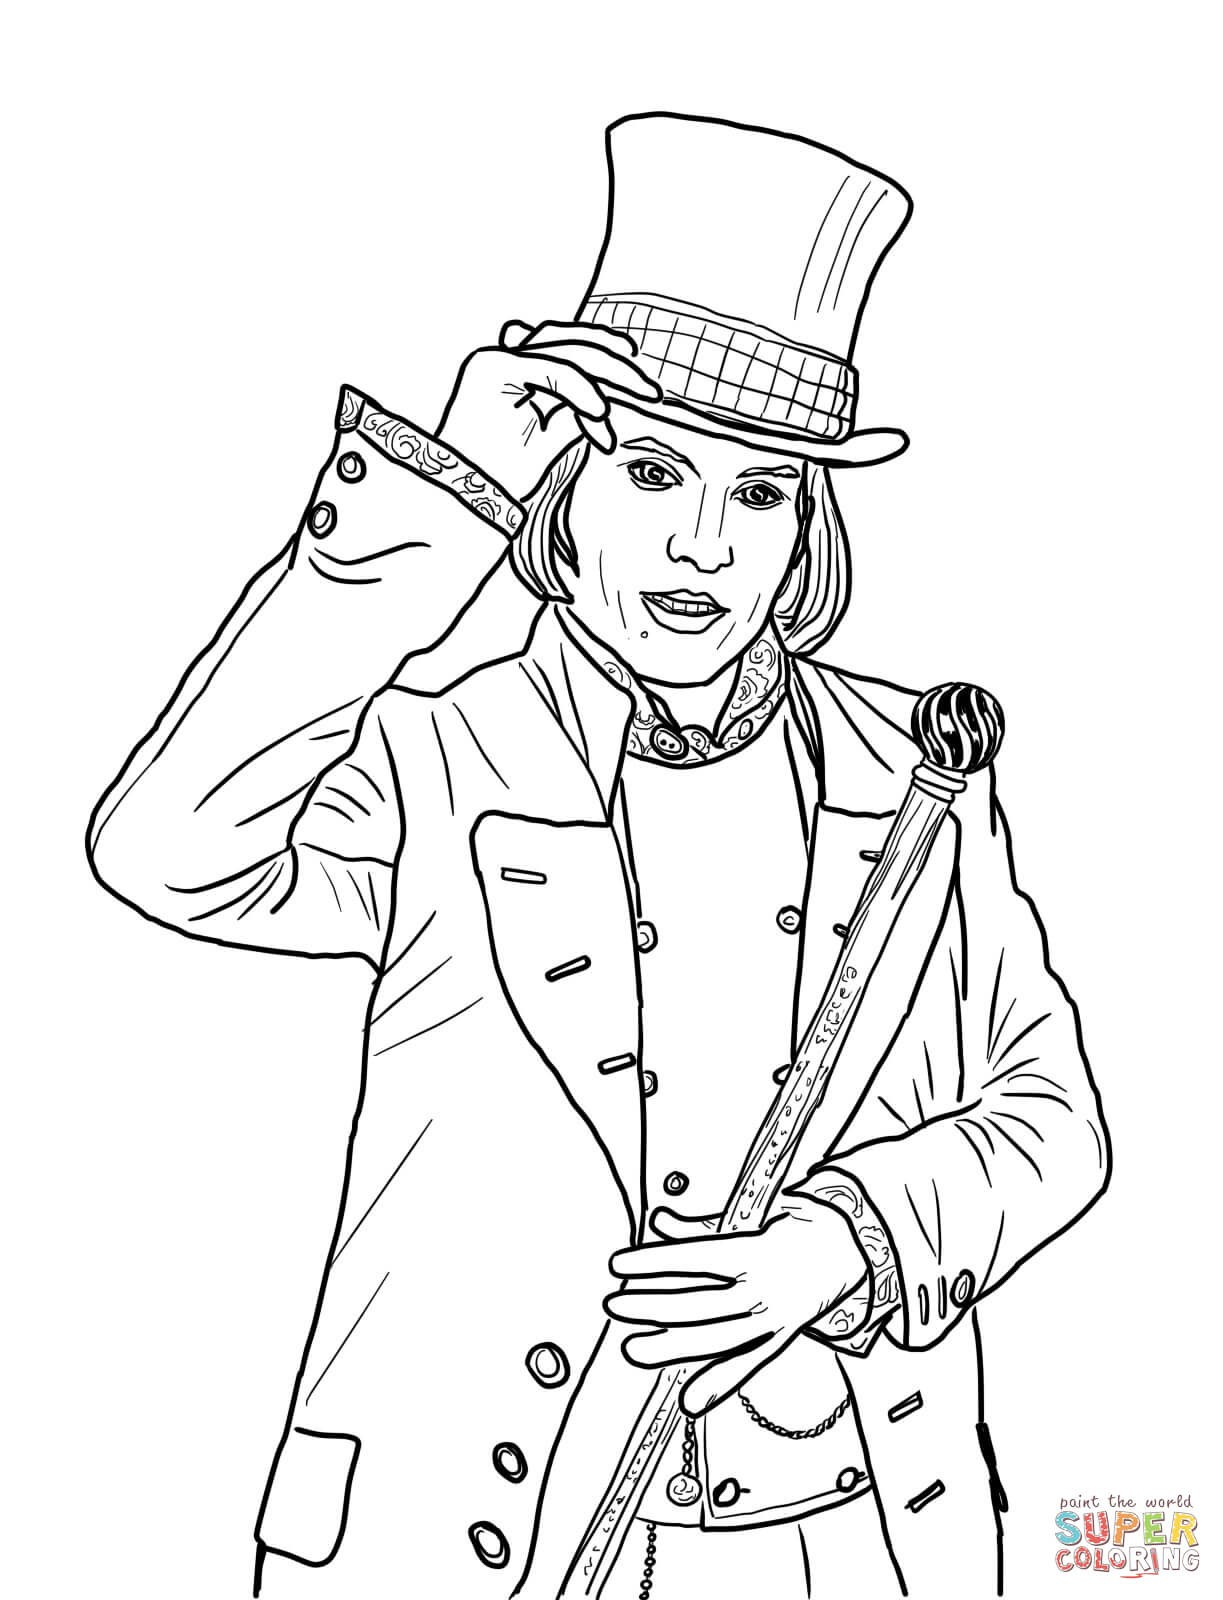 1223x1600 Johnny Depp Coloring Pages For Kids